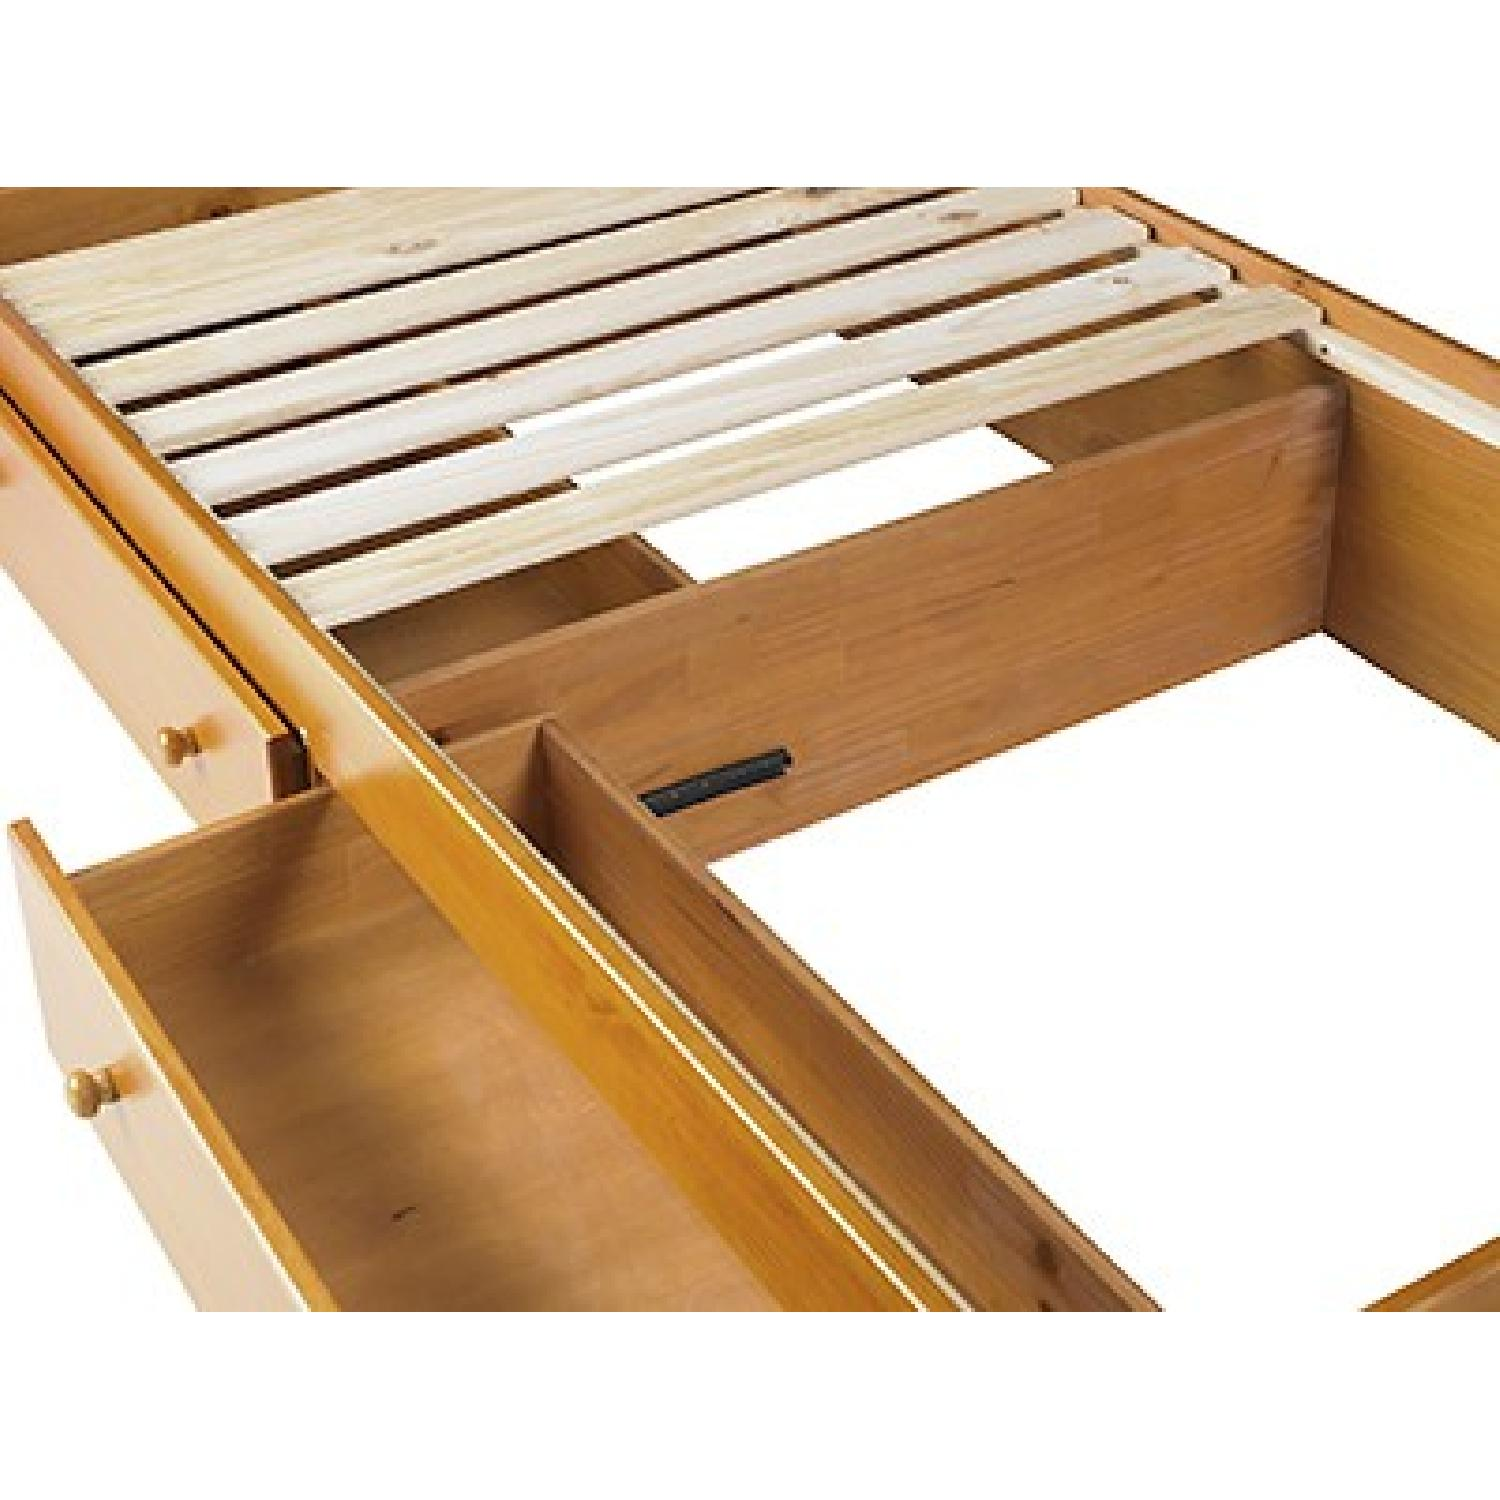 Full Size Solid Wood Bed in Honey Pine w/ Storage Drawers - image-2